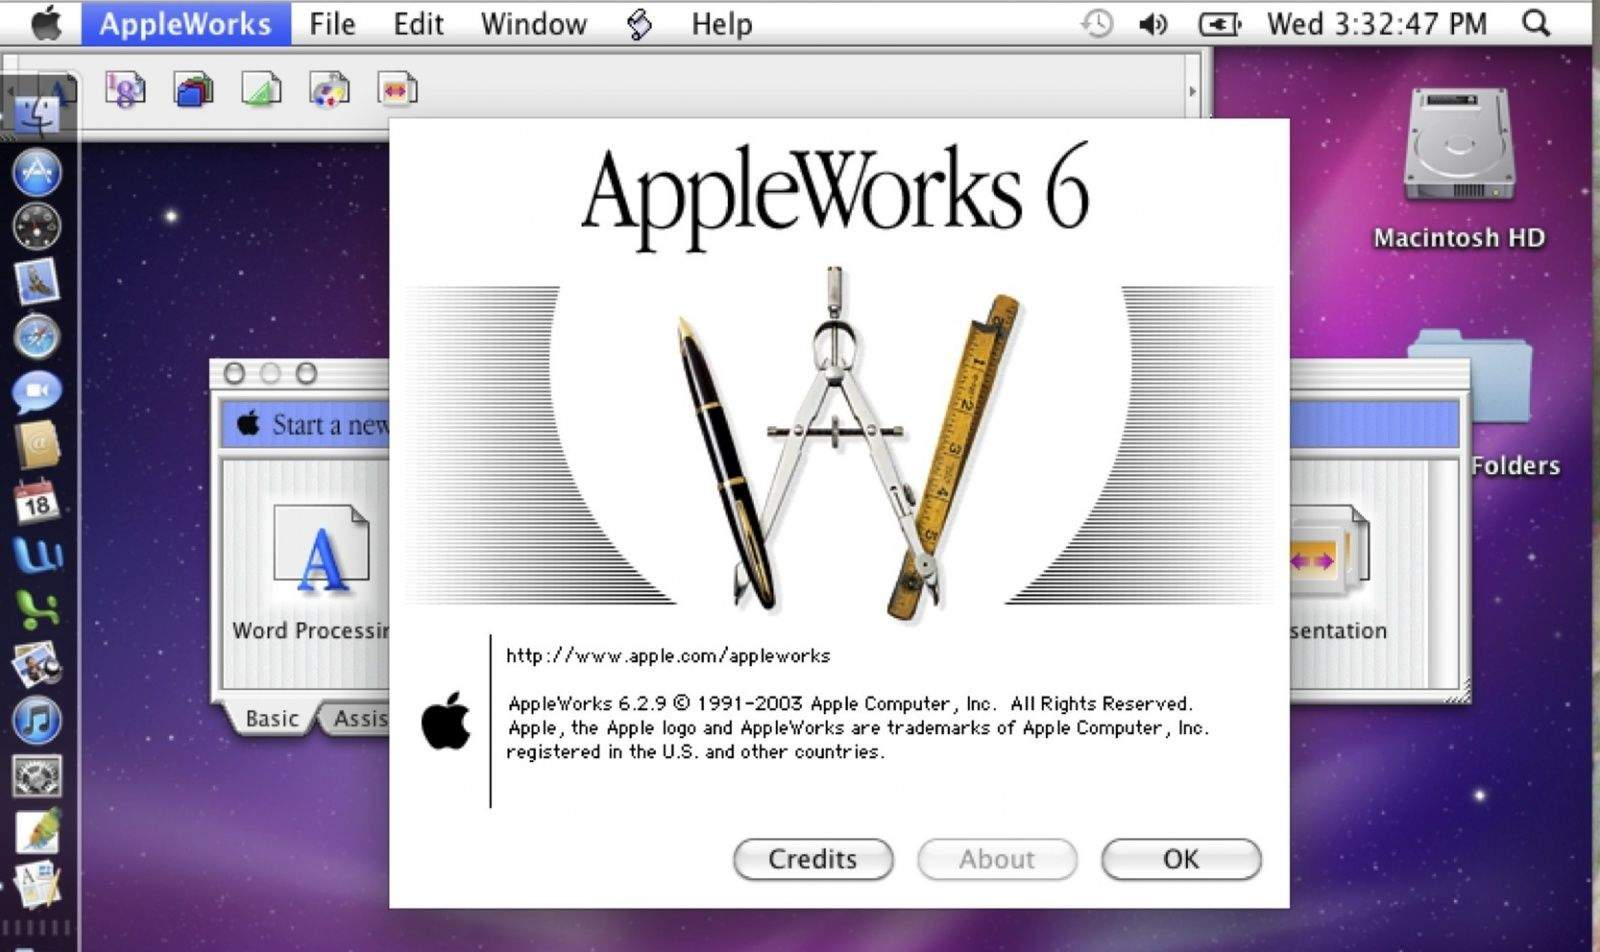 Updated Convert System Os 9 Appleworks 6 Files To Os X